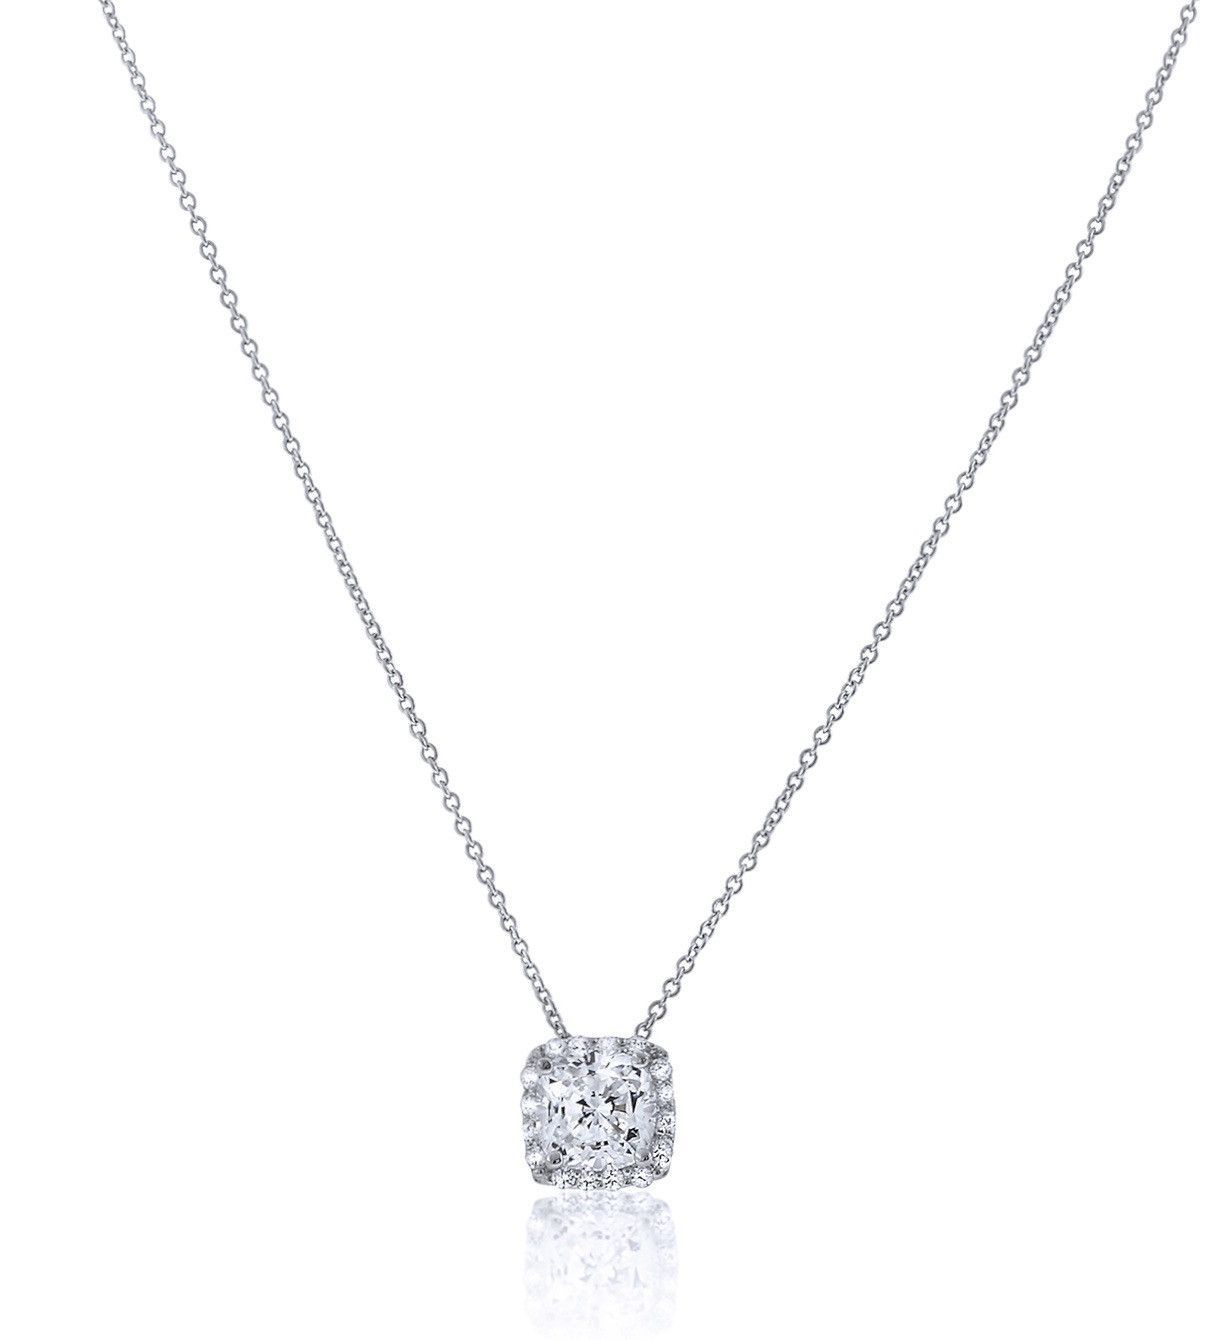 Chandi Diamond Square Pendant Necklace With Halo | Jewelry In 2019 With Regard To 2019 Sparkling Square Halo Pendant Necklaces (View 11 of 25)